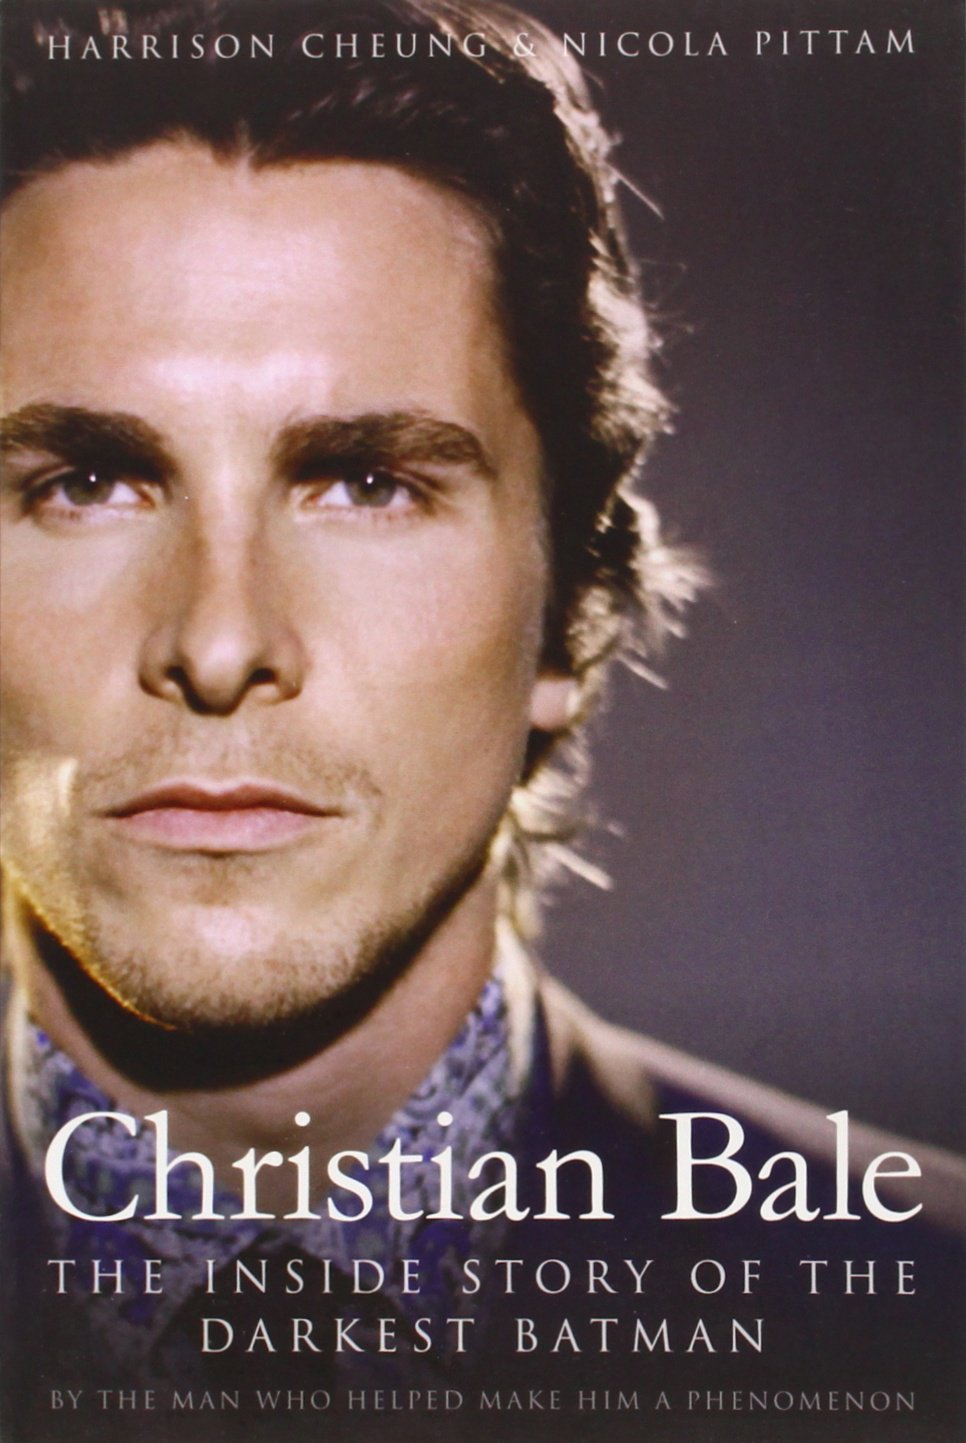 Christian bale the inside story of the darkest batman harrison christian bale the inside story of the darkest batman harrison cheung nicola pittam 9781936661640 amazon books nvjuhfo Image collections